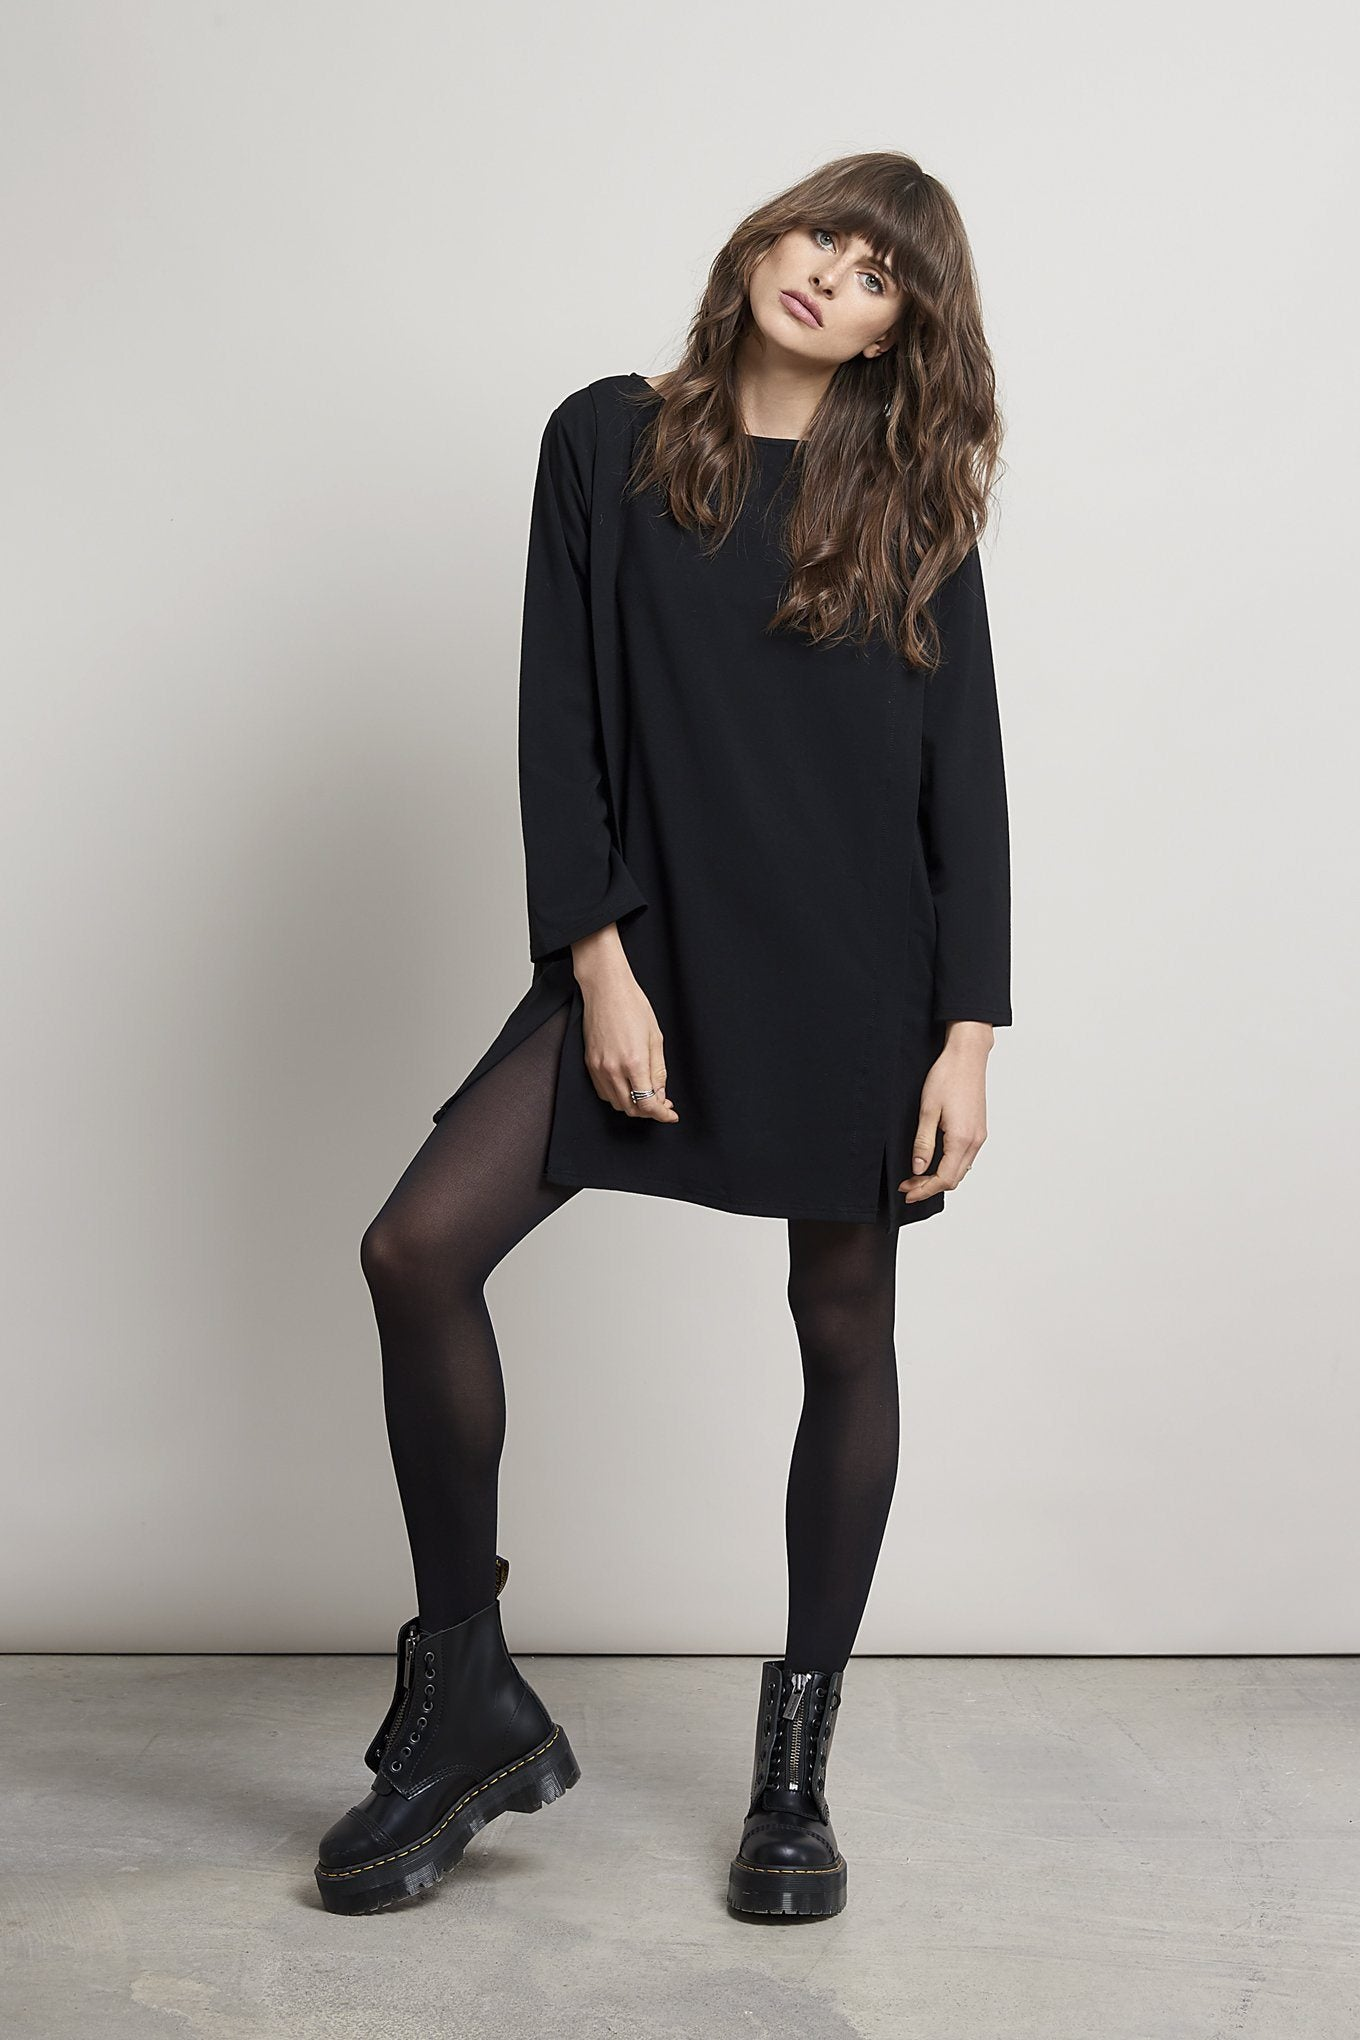 HARBOUR Bamboo Tunic Black - Komodo Fashion